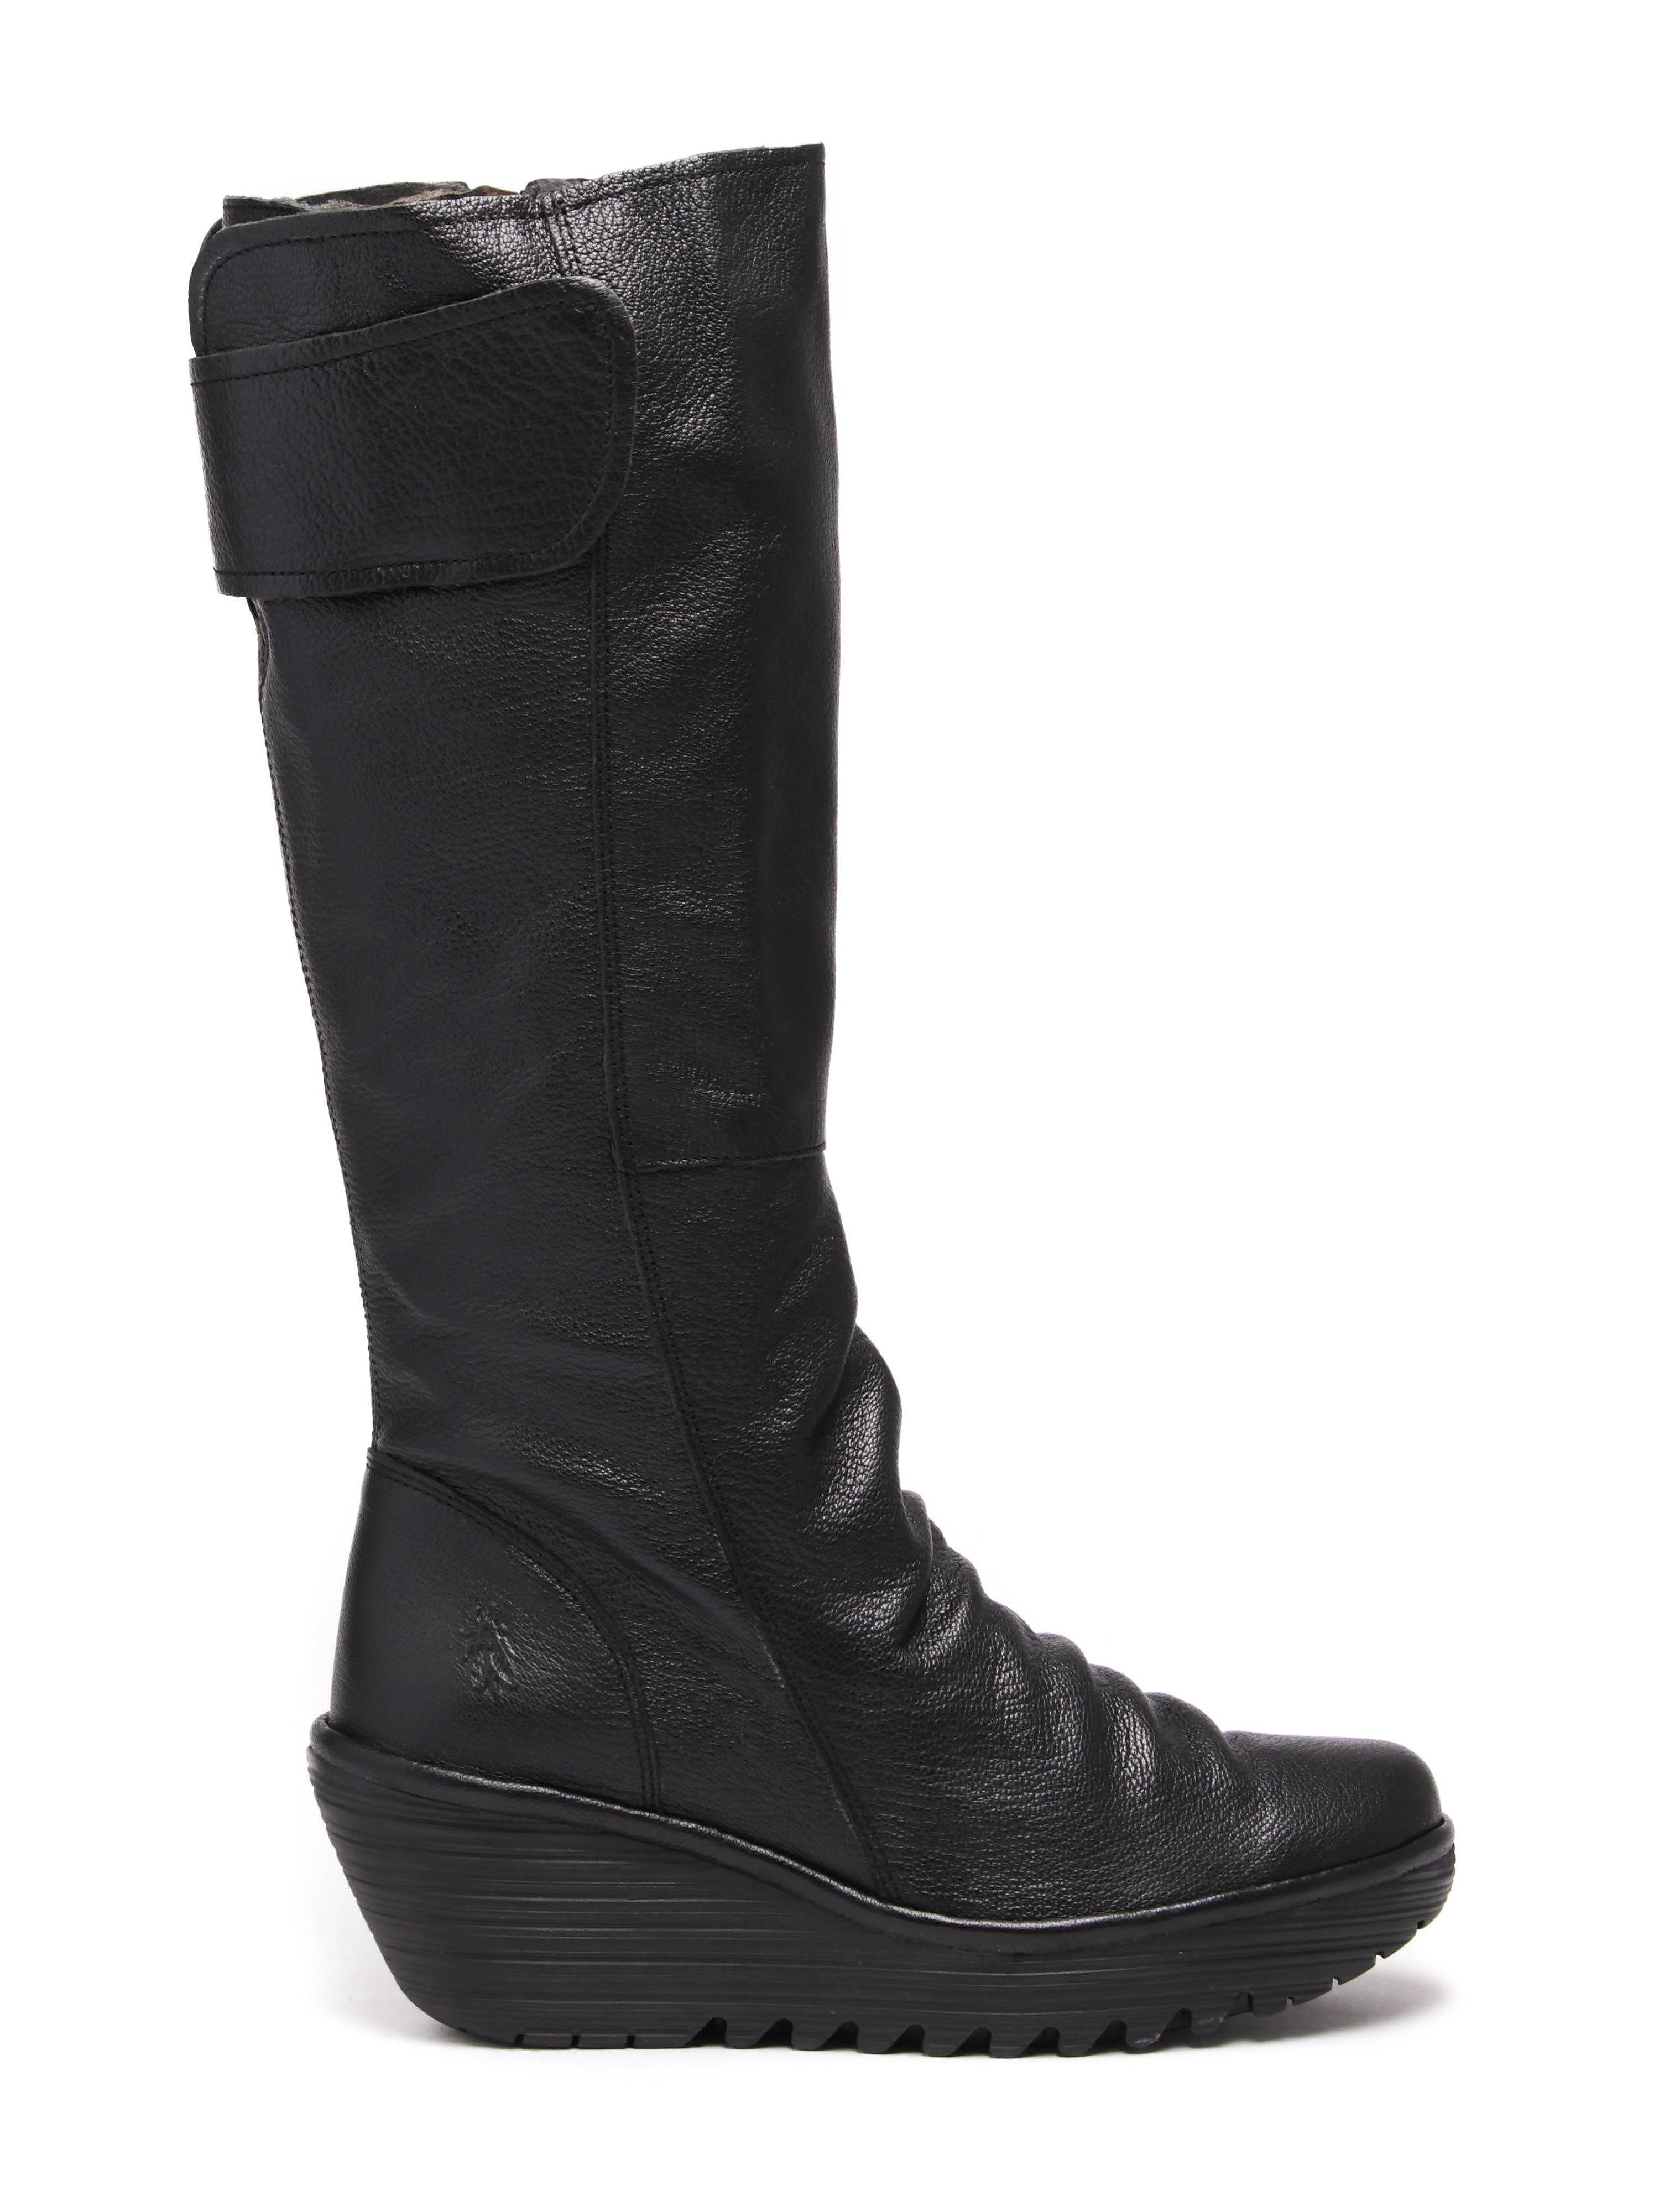 Fly London Women's Yulo Knee High Boots - Black